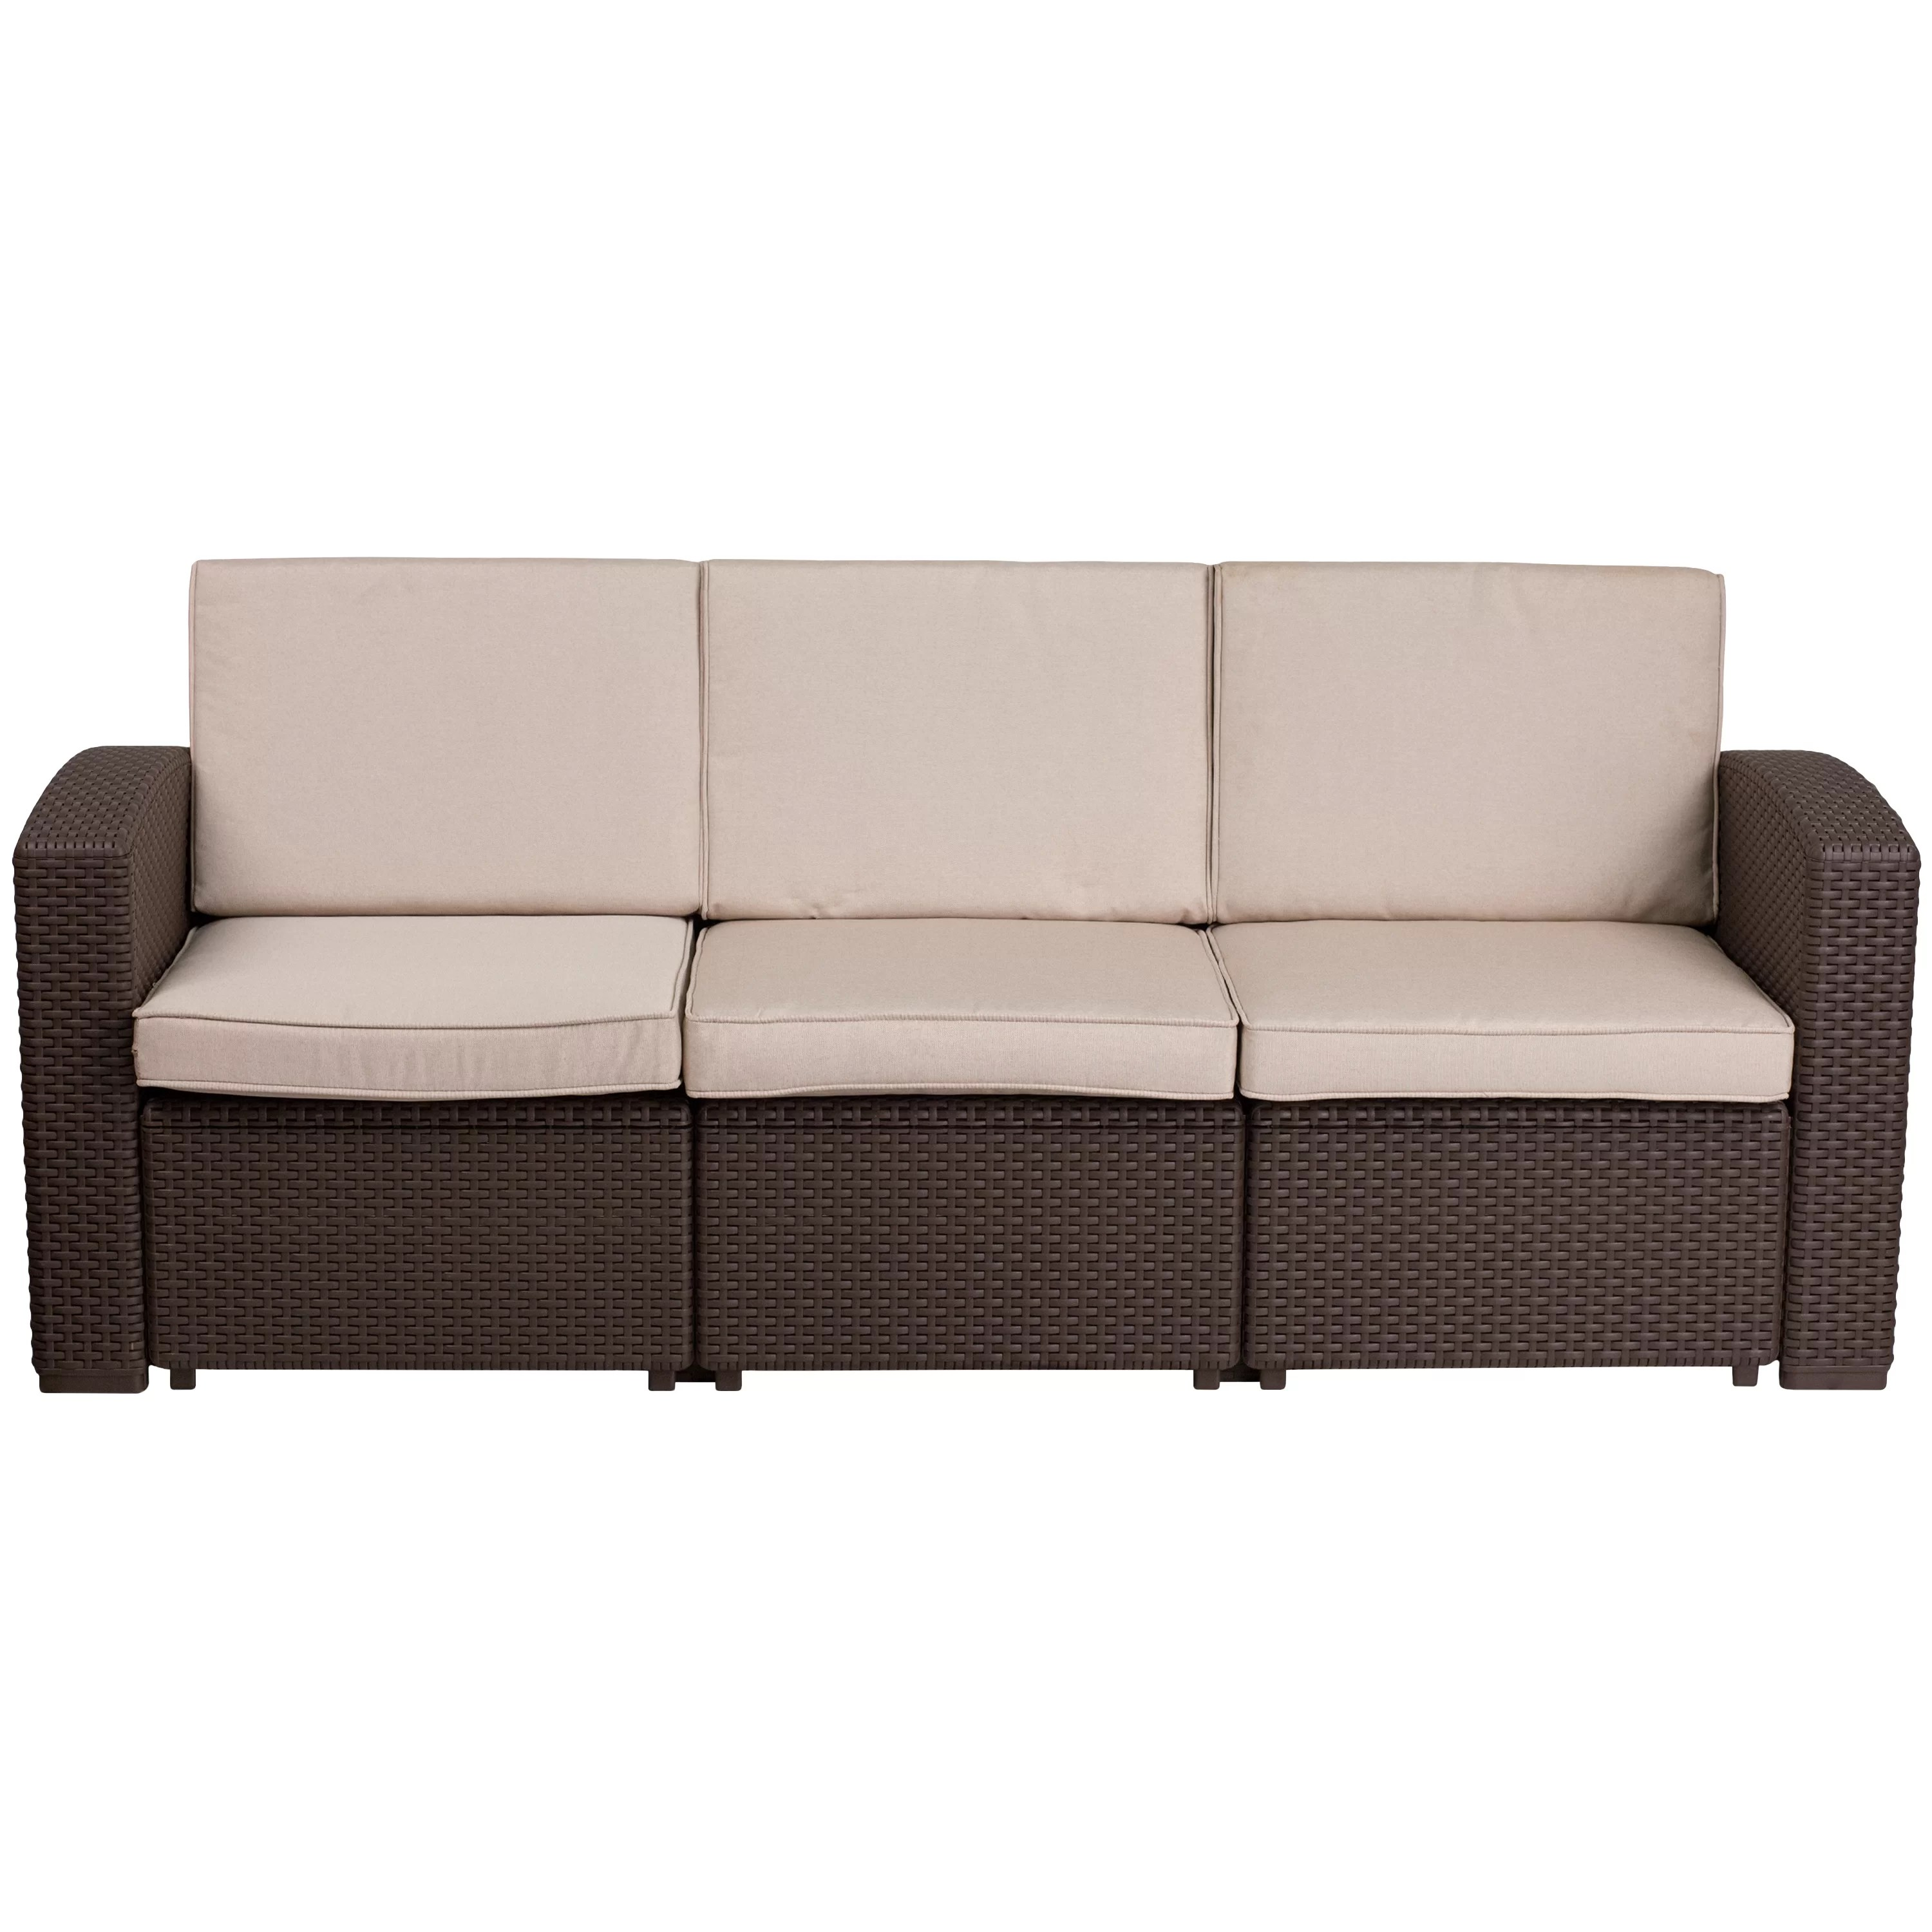 Rattan Sofa Clifford Faux Rattan Sofa With Cushions